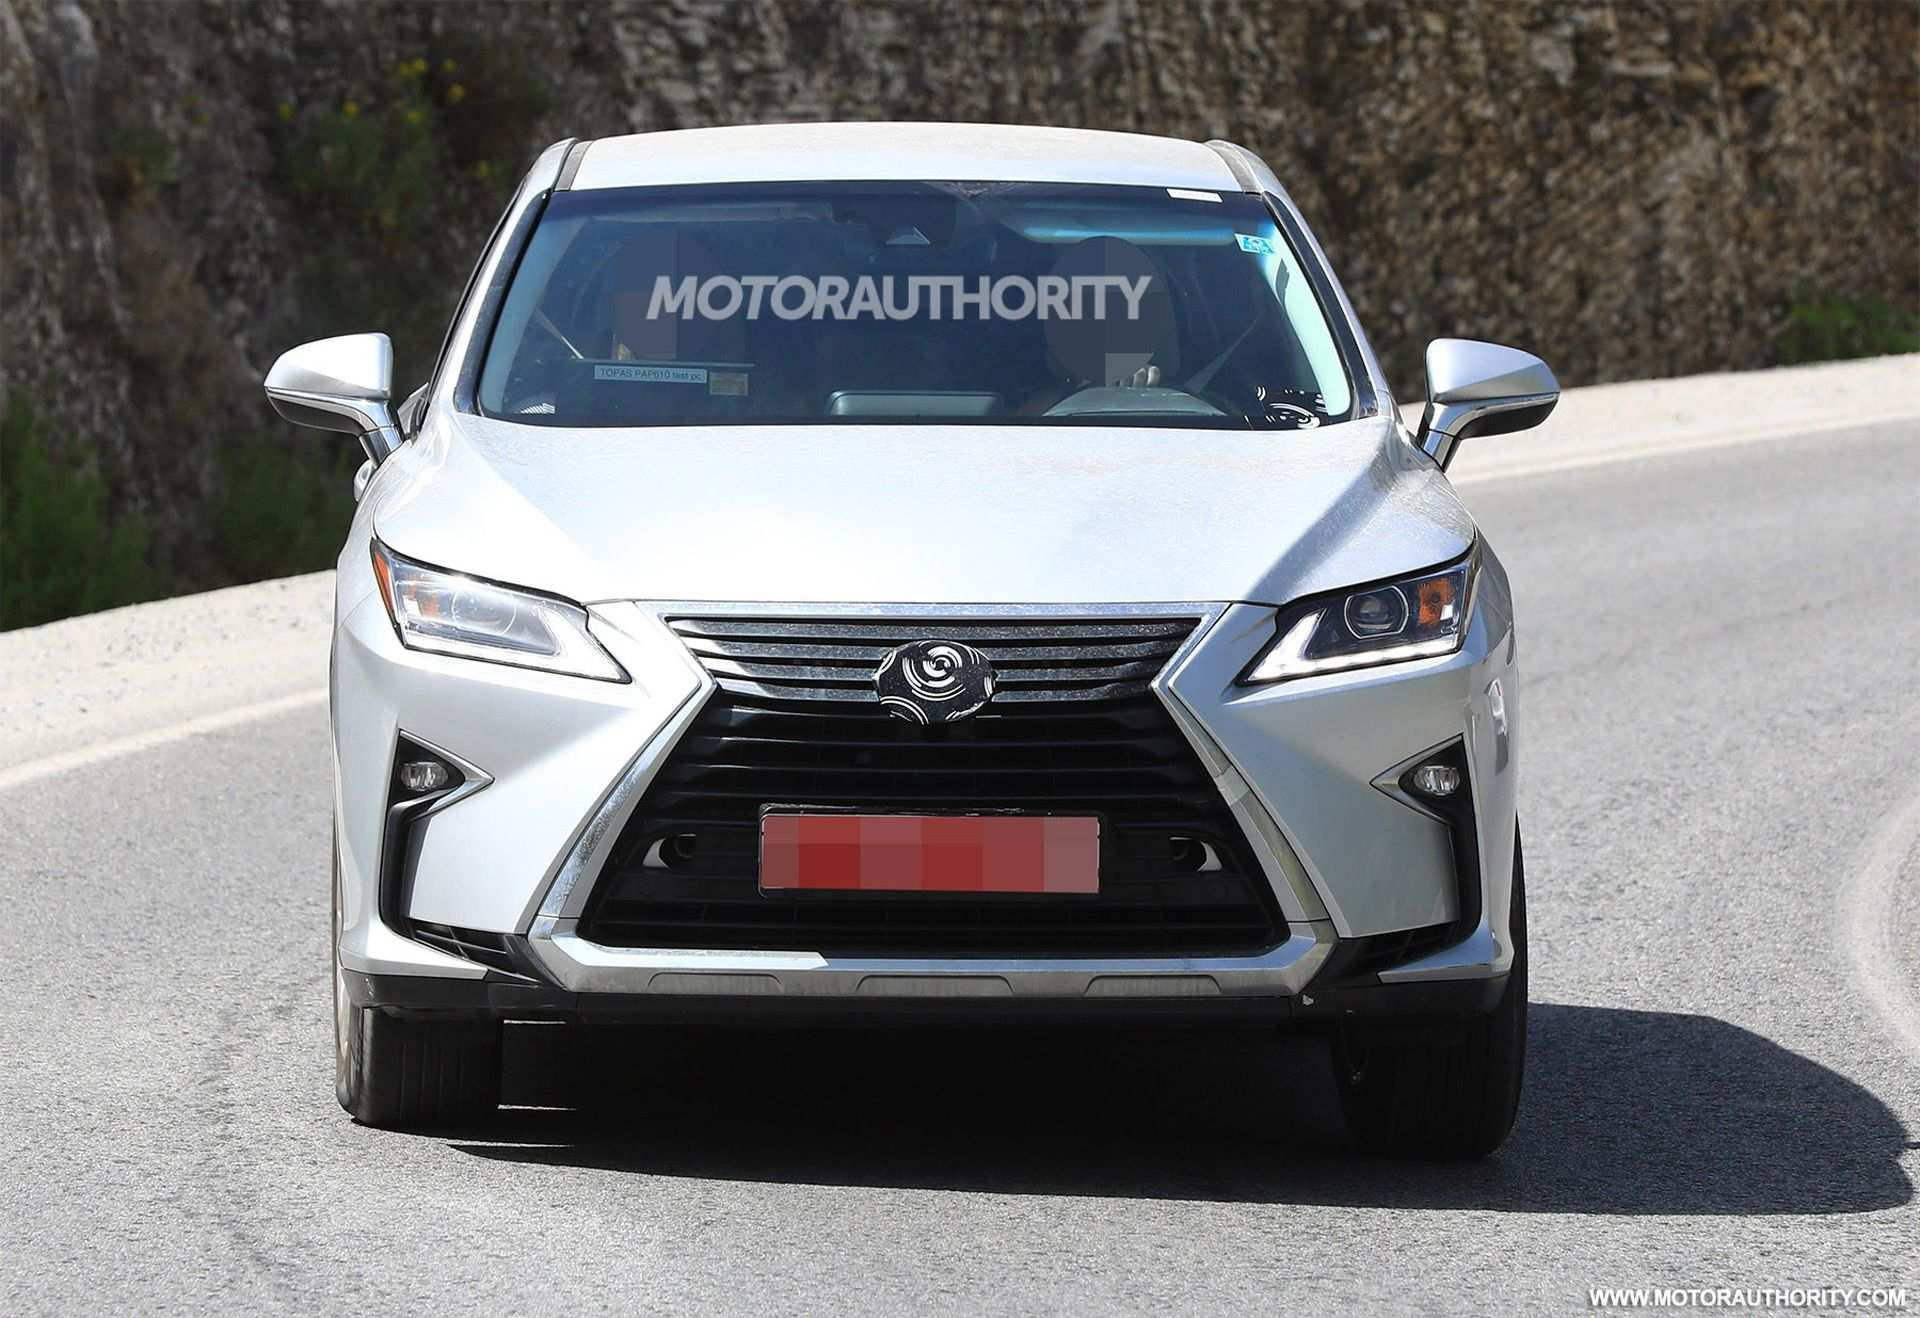 76 New When Do 2019 Lexus Come Out Rumors with When Do 2019 Lexus Come Out